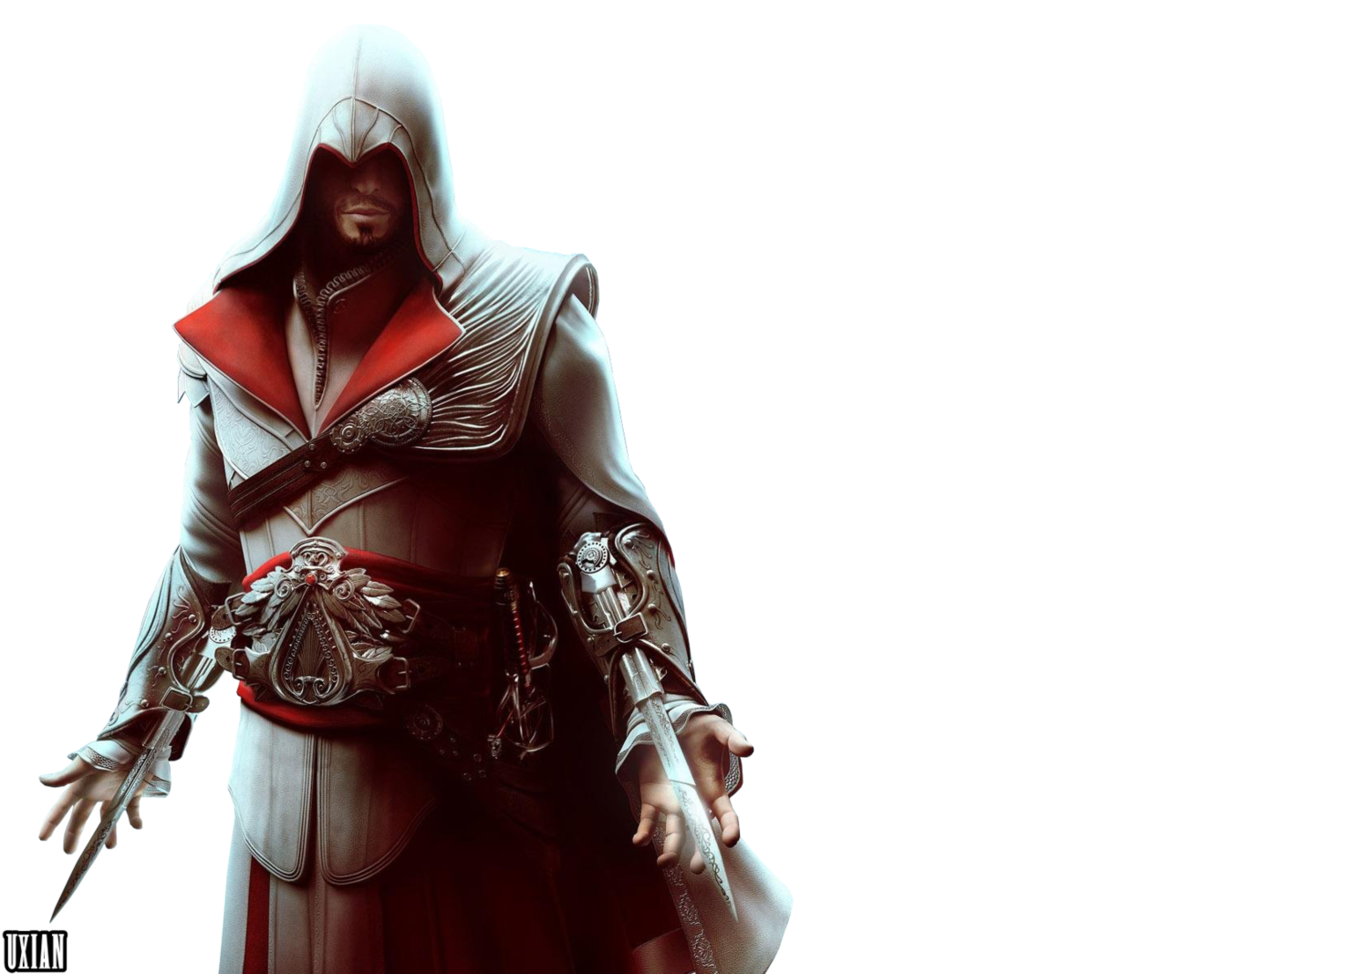 Ezio Brotherhood http://it.assassinscreed.wikia.com/wiki/File:Ezio_auditore_brotherhood.png